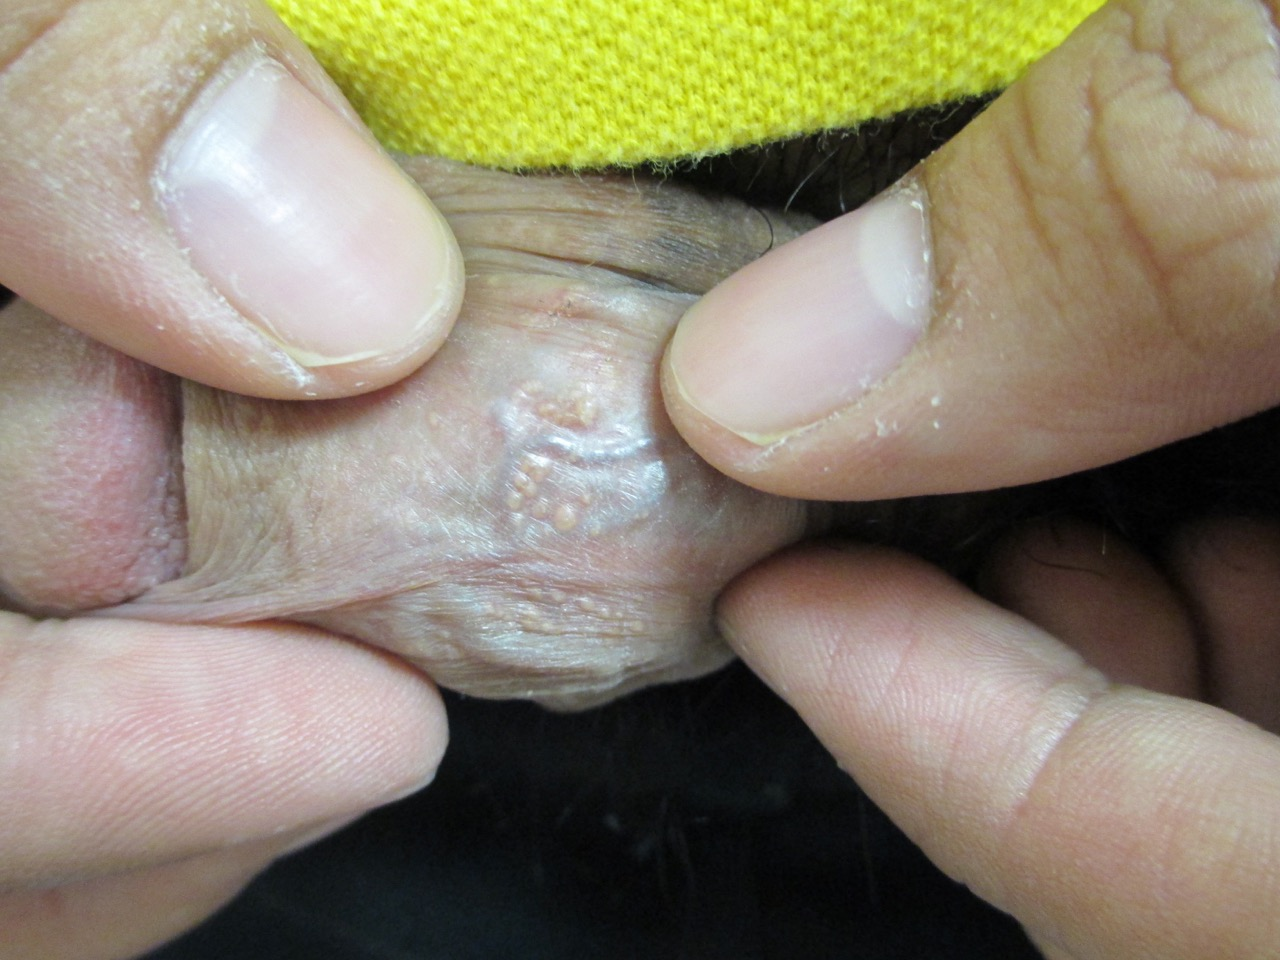 Fordyce spots on the glans penis